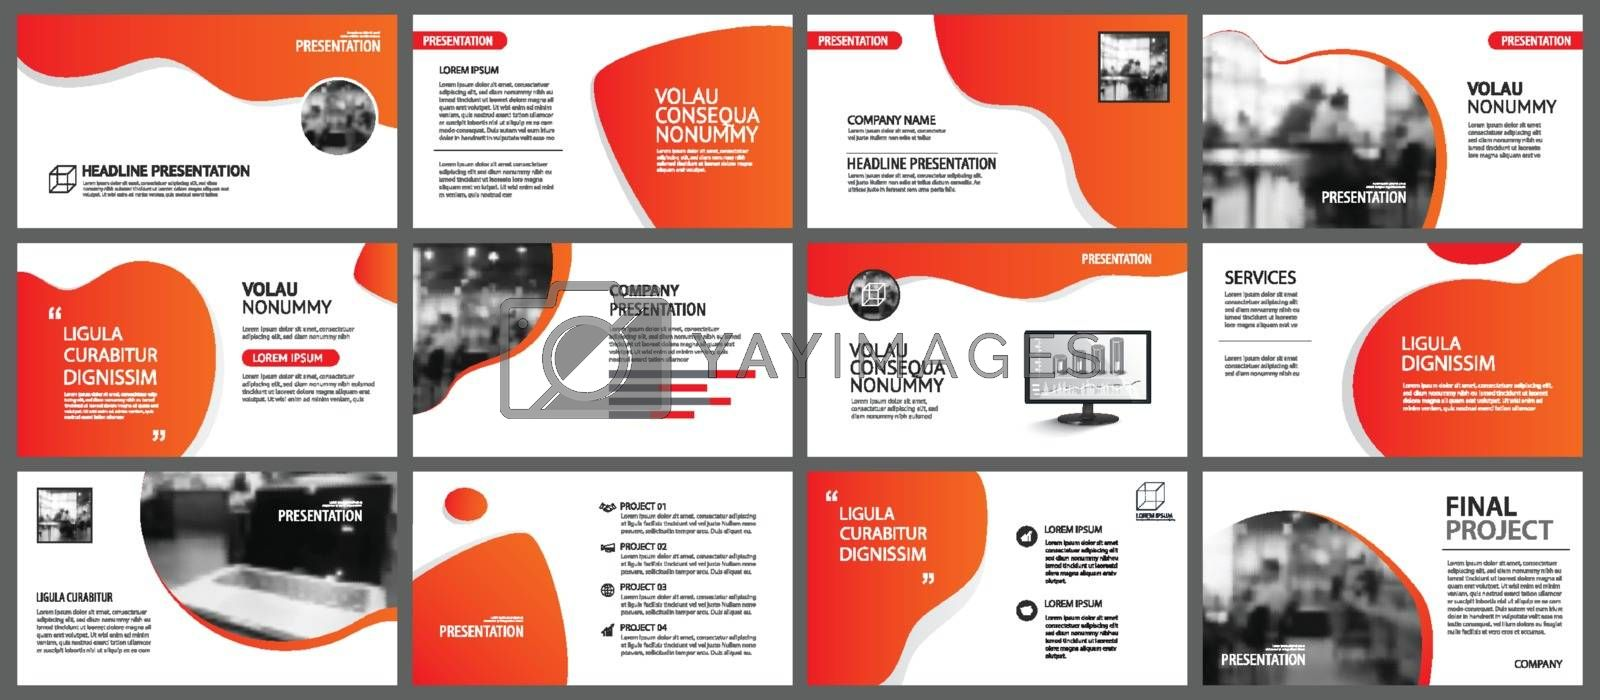 Presentation and slide layout background. Design red and orange gradient template. Use for business annual report, flyer, marketing, leaflet, advertising, brochure, modern style.